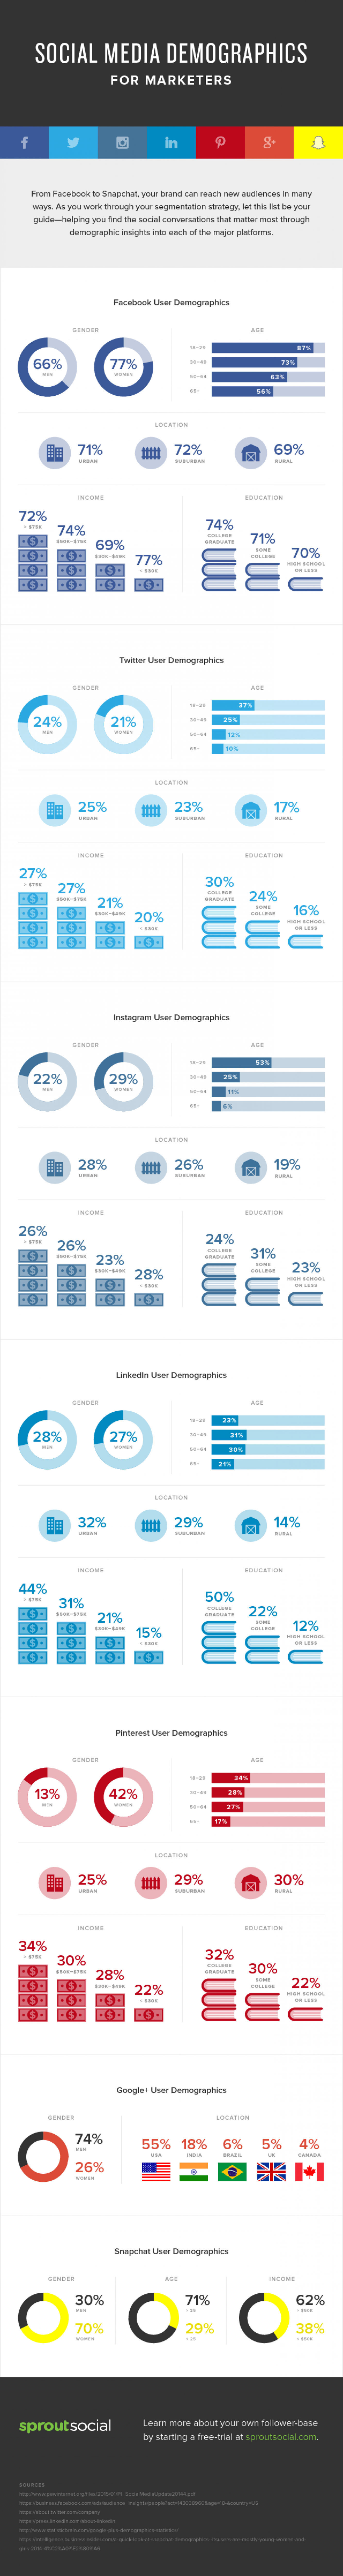 Social Media Demographics for Marketers Infographic